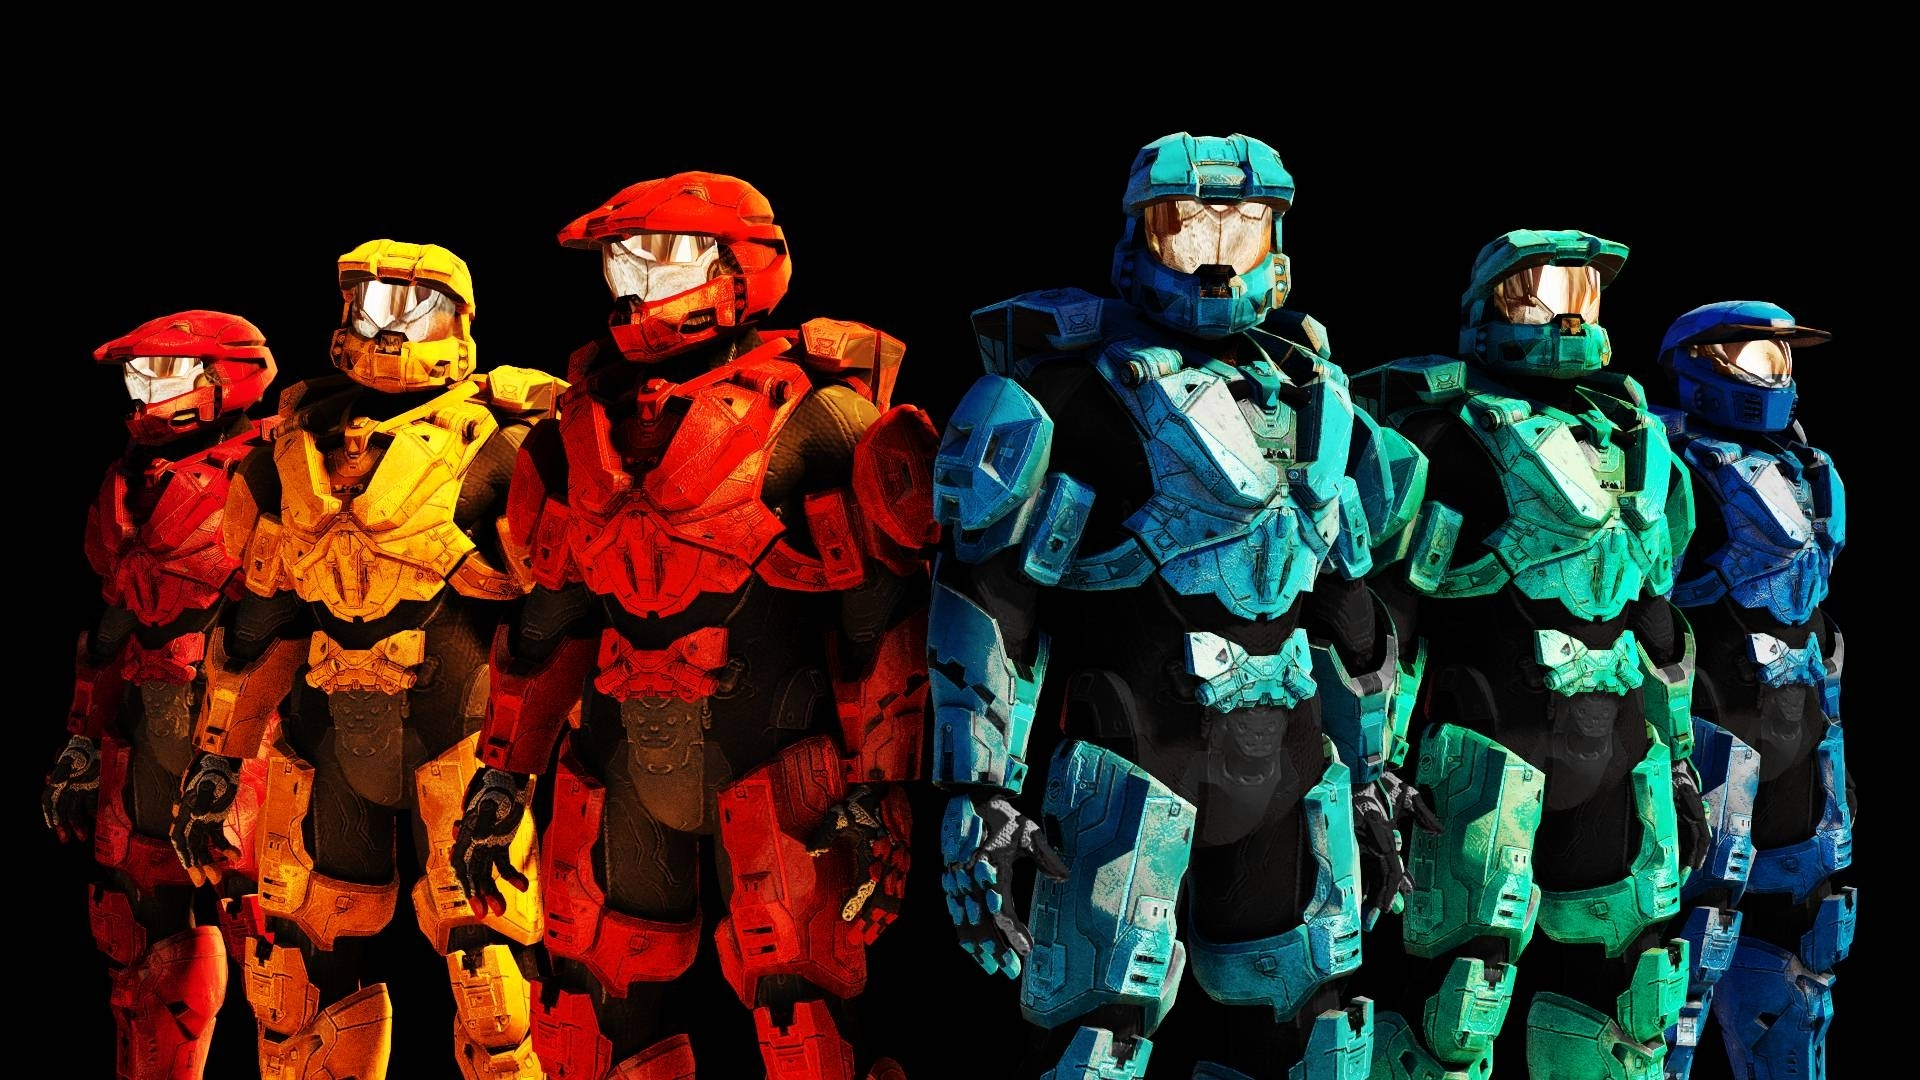 red vs. blue wallpapers - wallpaper cave